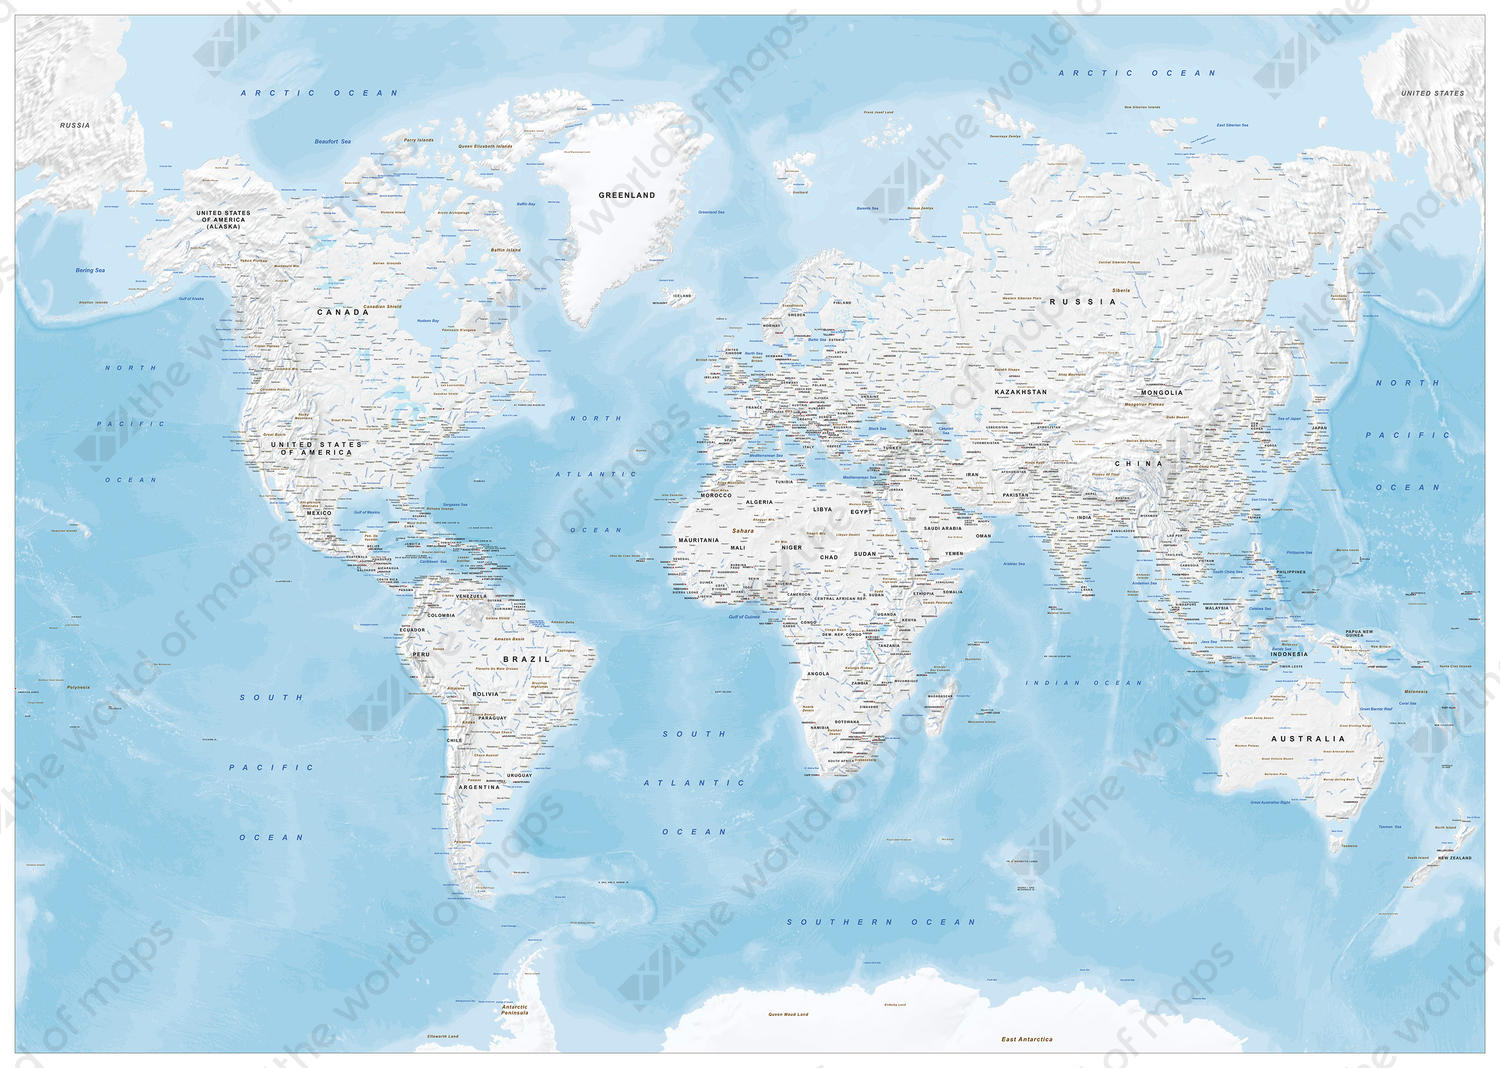 Vector world map political 1418 the world of maps digital world map political without colors gumiabroncs Choice Image